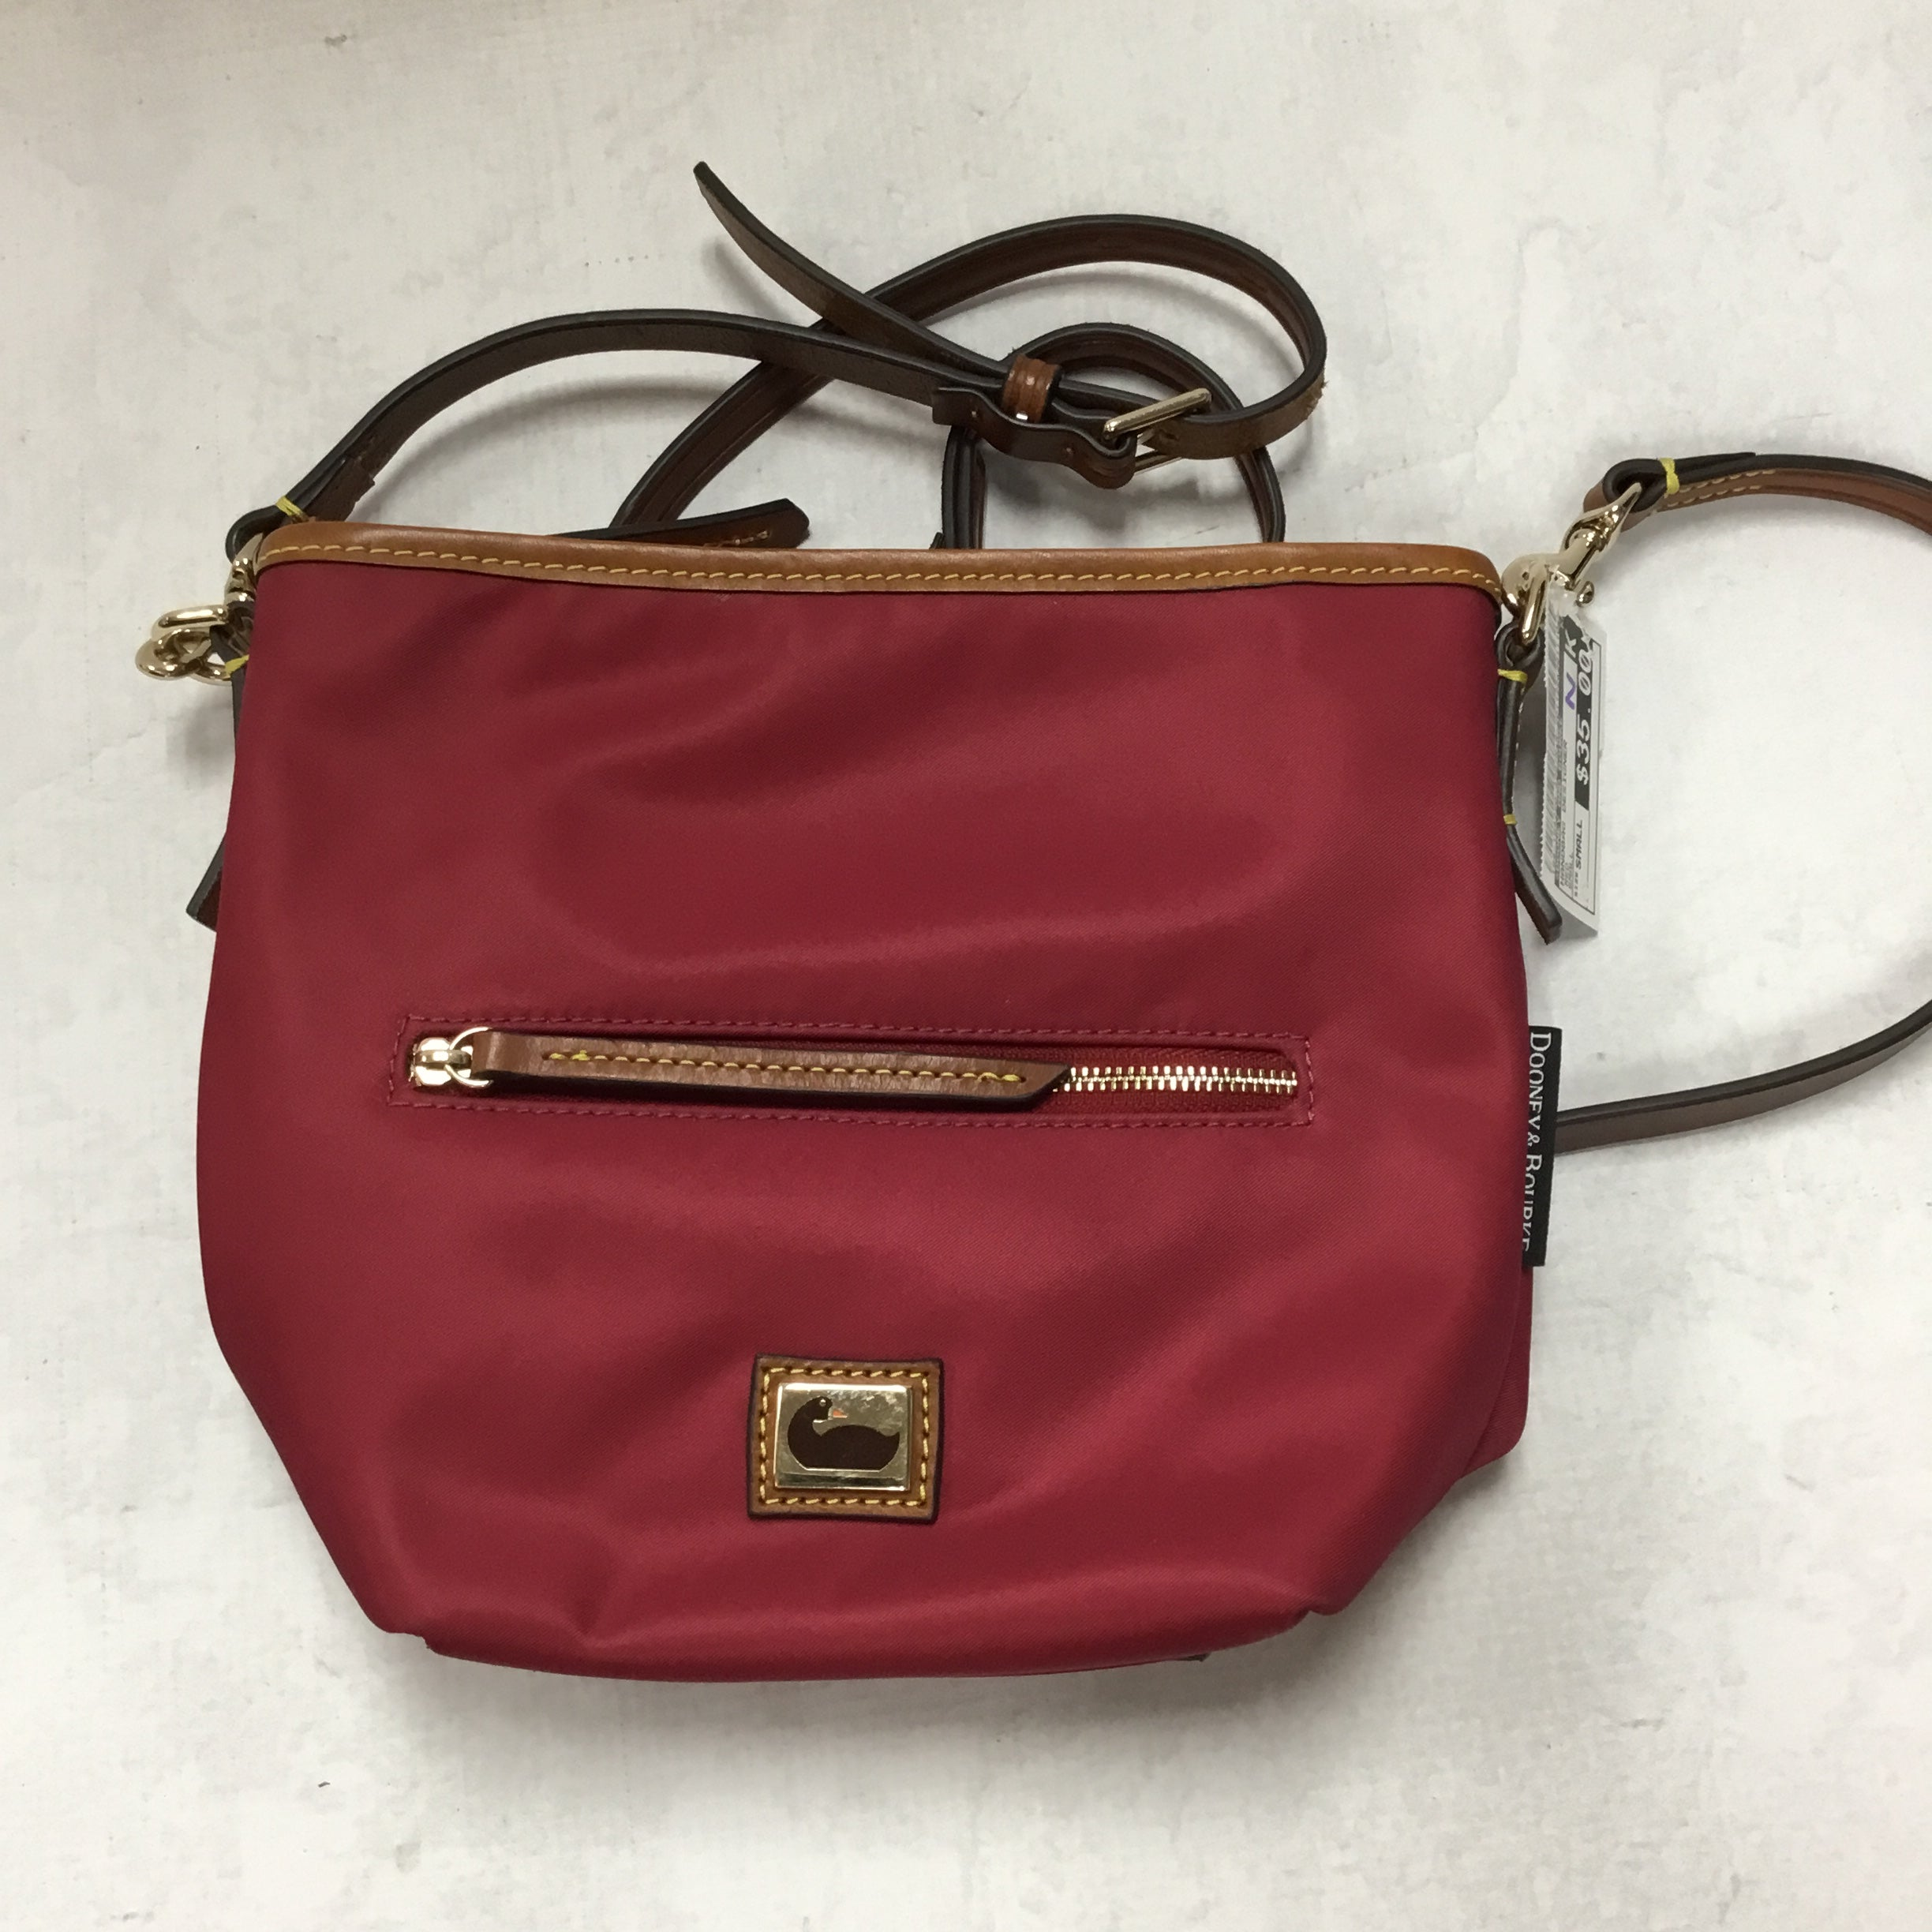 Primary Photo - BRAND: DOONEY AND BOURKE <BR>STYLE: HANDBAG DESIGNER <BR>COLOR: PINK<BR>SIZE: SMALL <BR>OTHER INFO: 9 X 3.5 X 8 INCH<BR>SKU: 194-194220-4297R